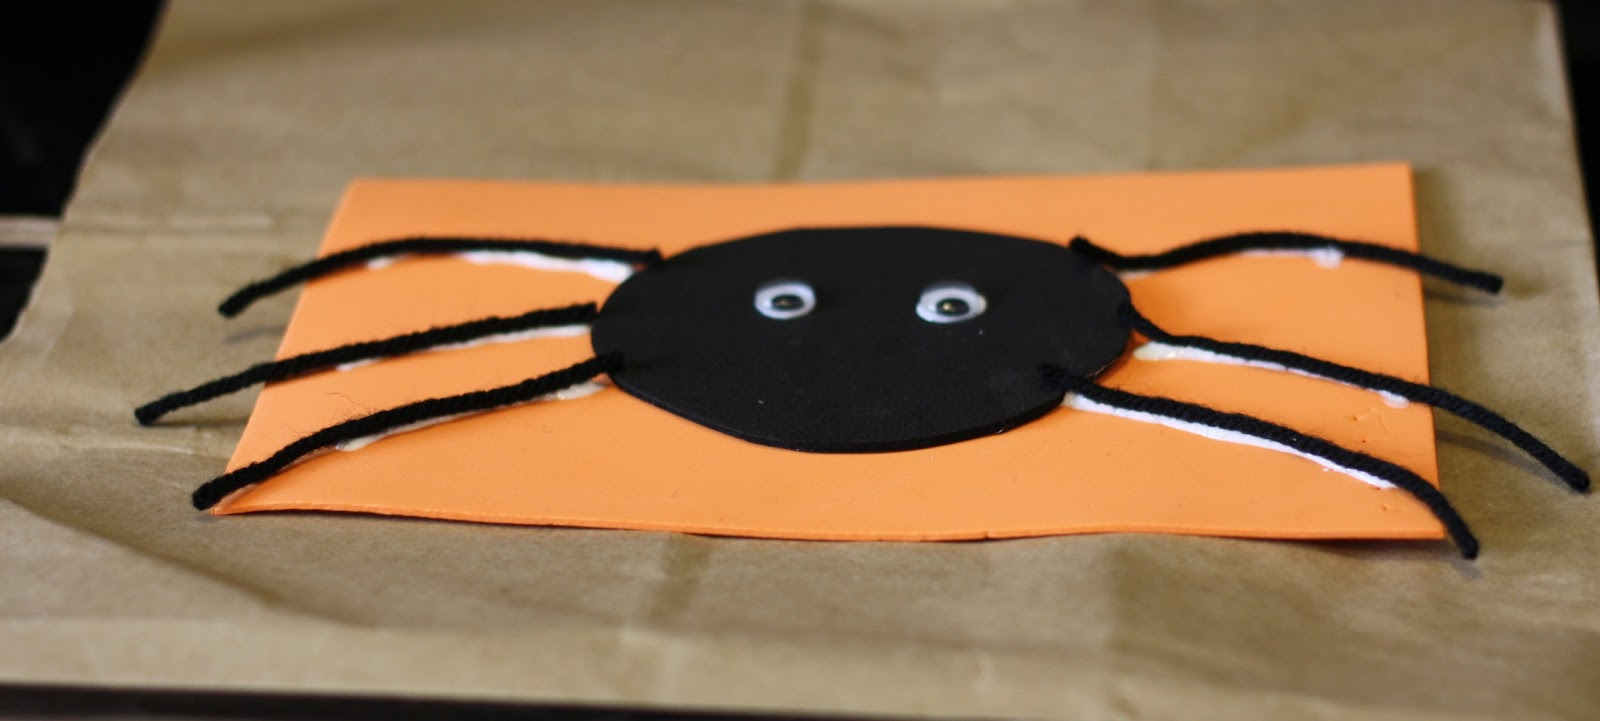 Looking for easy Halloween craft ideas? This round up of Halloween Crafts for Preschoolers has loads of ideas that you can do at home or in a school setting. Great craft ideas for Halloween class parties too! We are wrapping up a week's worth of Halloween crafts with big ol' round up.